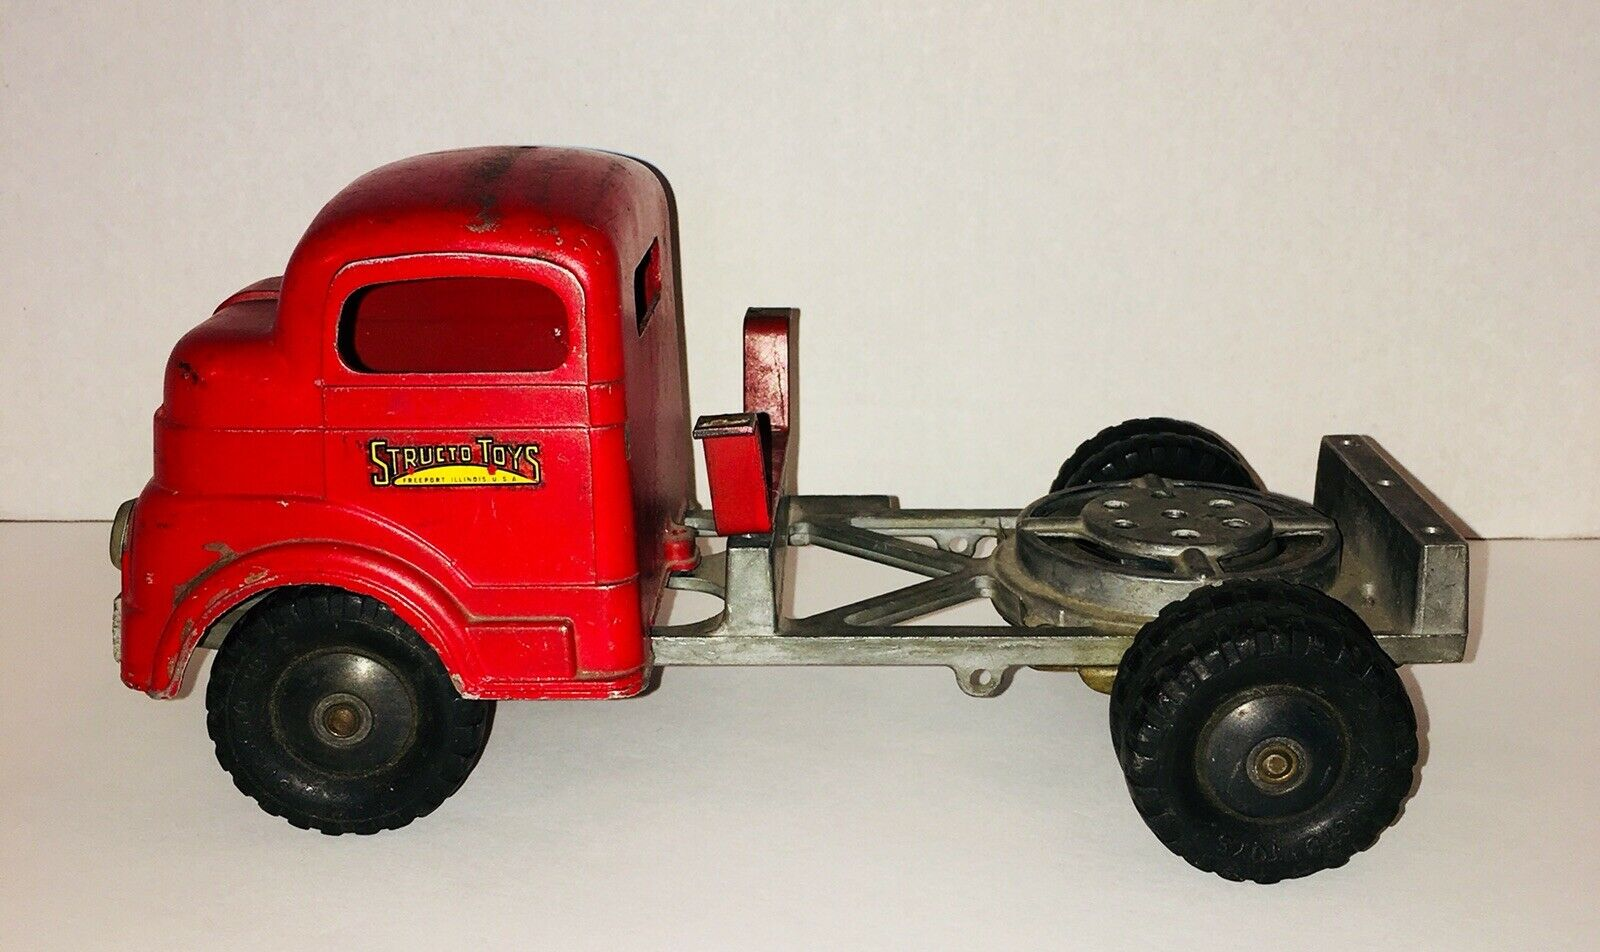 Structo Toys Truck Steel rot C-1502 Vintage 1950's